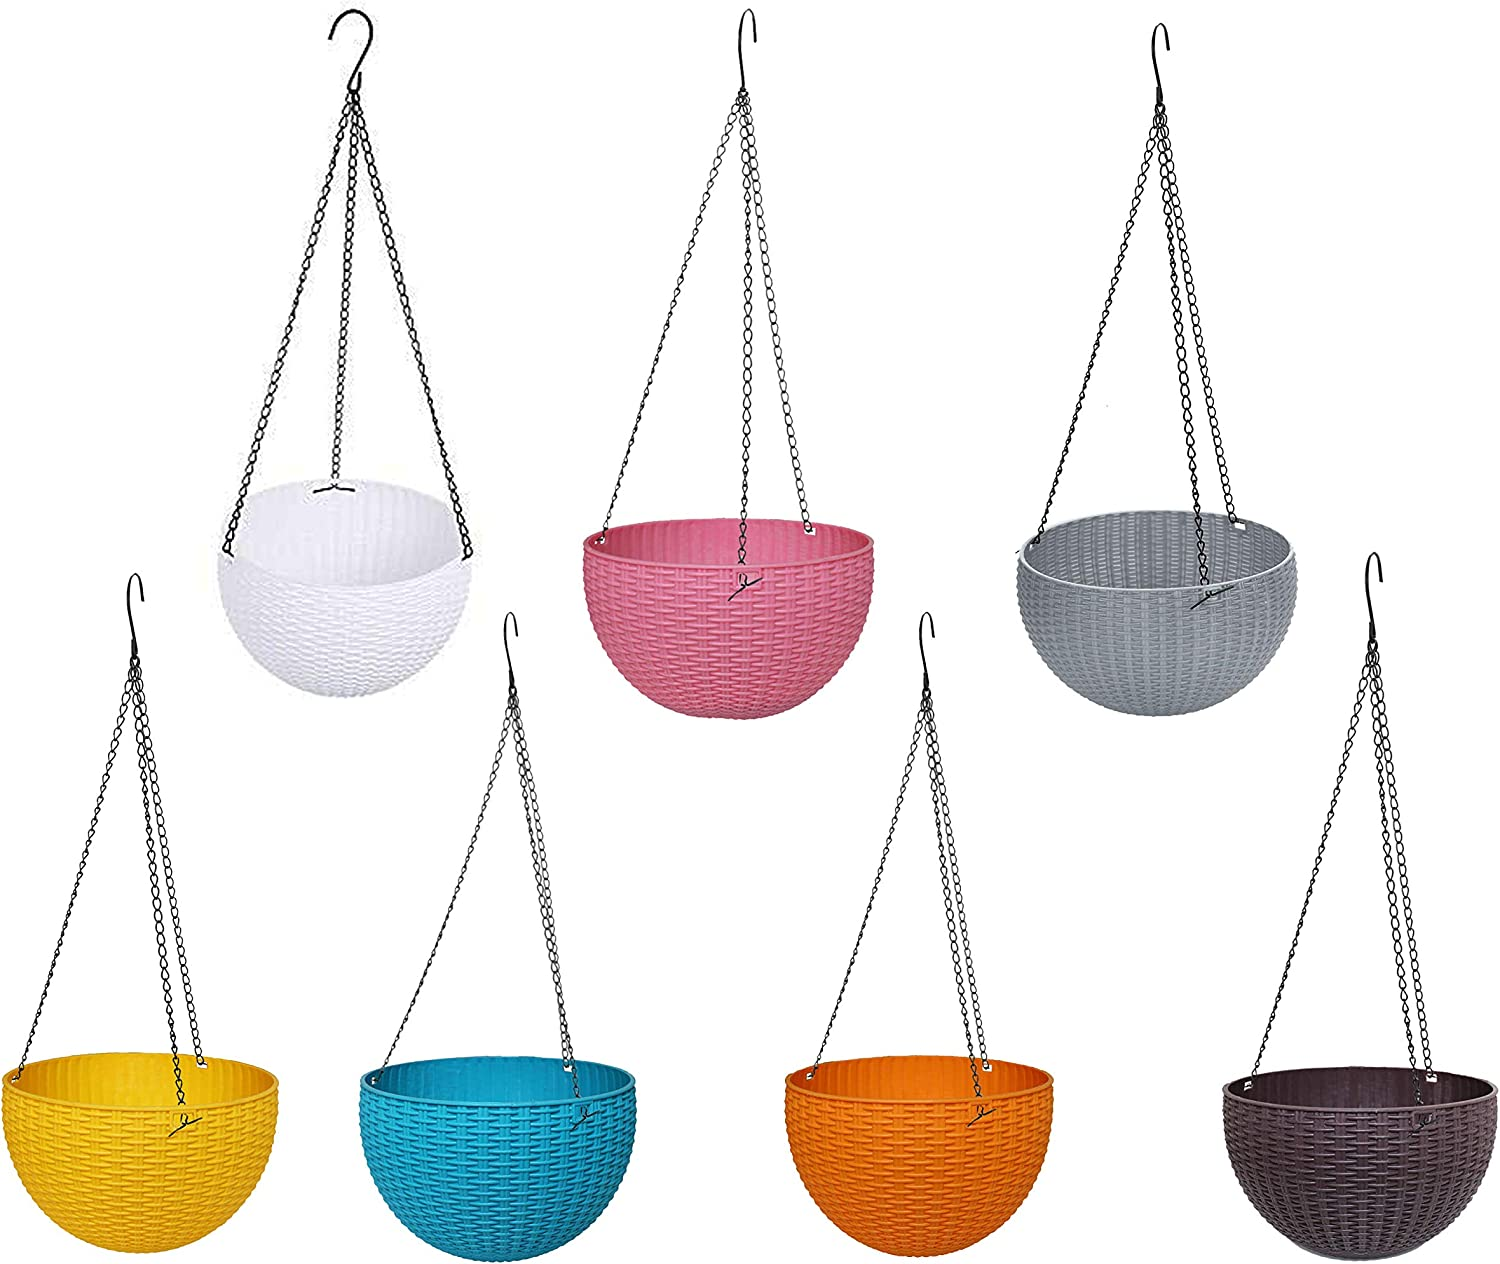 Pack of 7 Plastic Hanging Rattan Planter, Self-Watering Round Hanging Basket, Plant Herb Orchid Flower Pot,Blooms Container for Home Office Garden Balcony Wall Pergola Fences Indoor Outdoor Decoratio